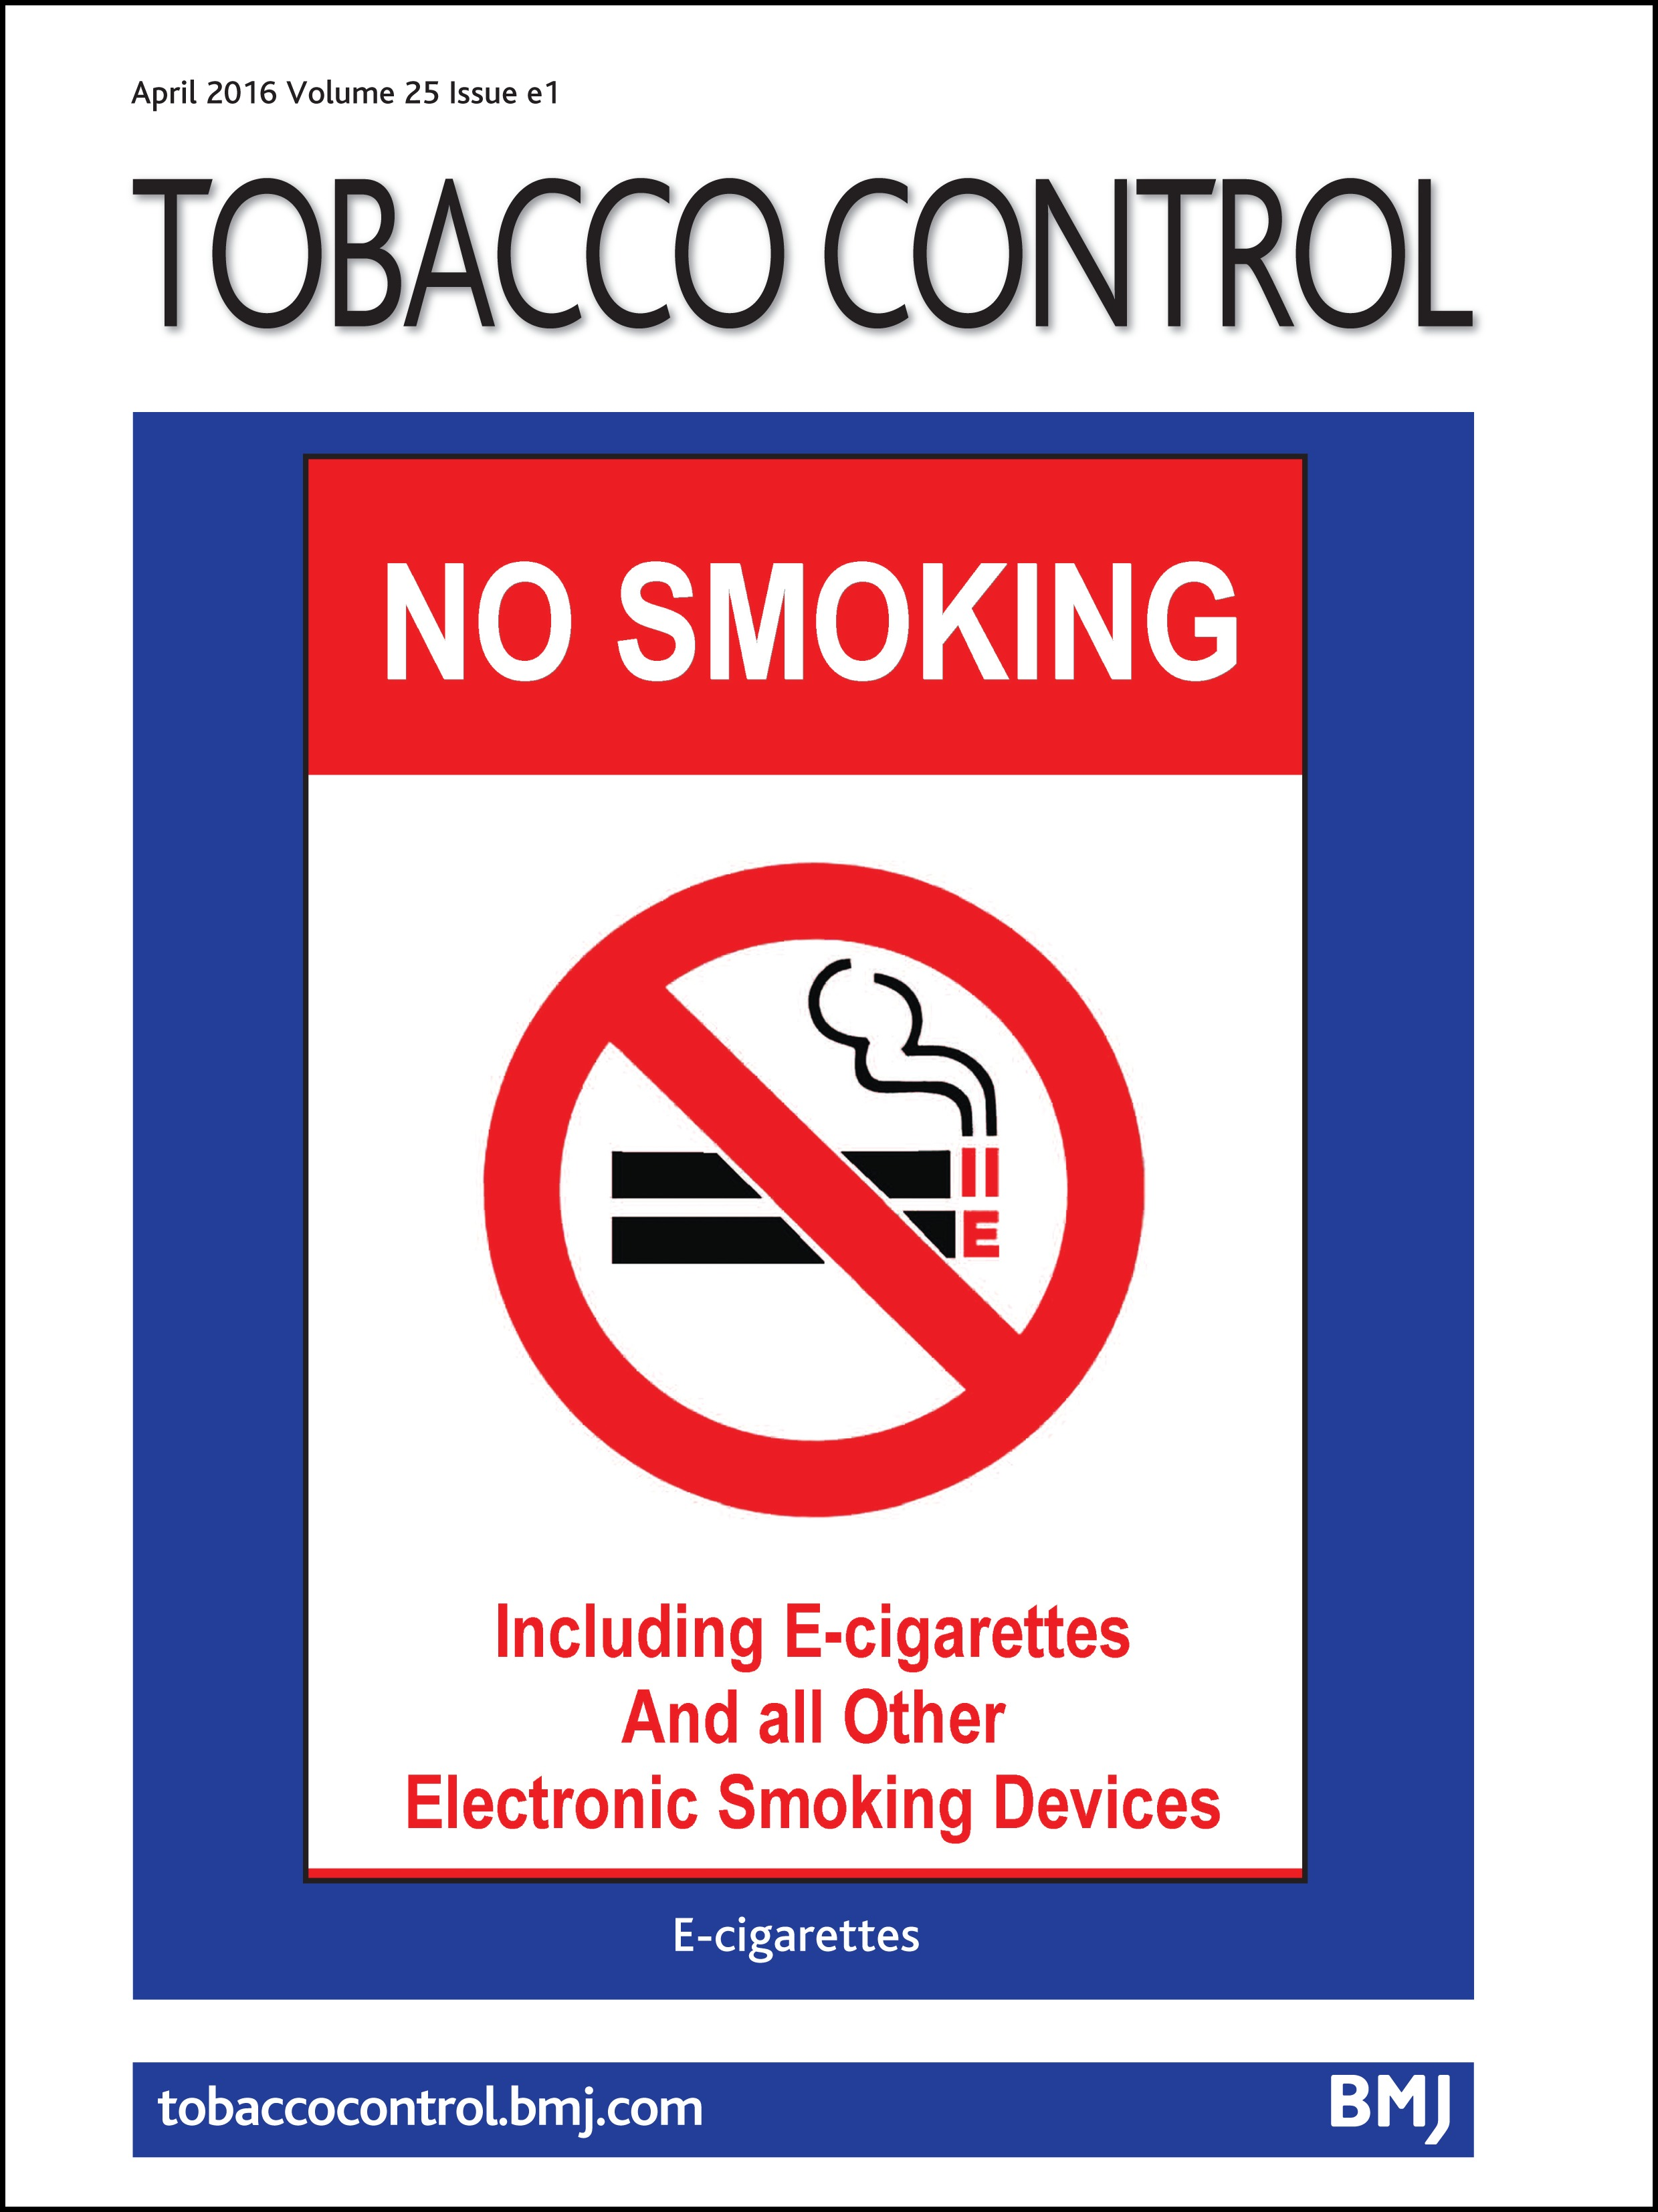 flavour chemicals in electronic cigarette fluids